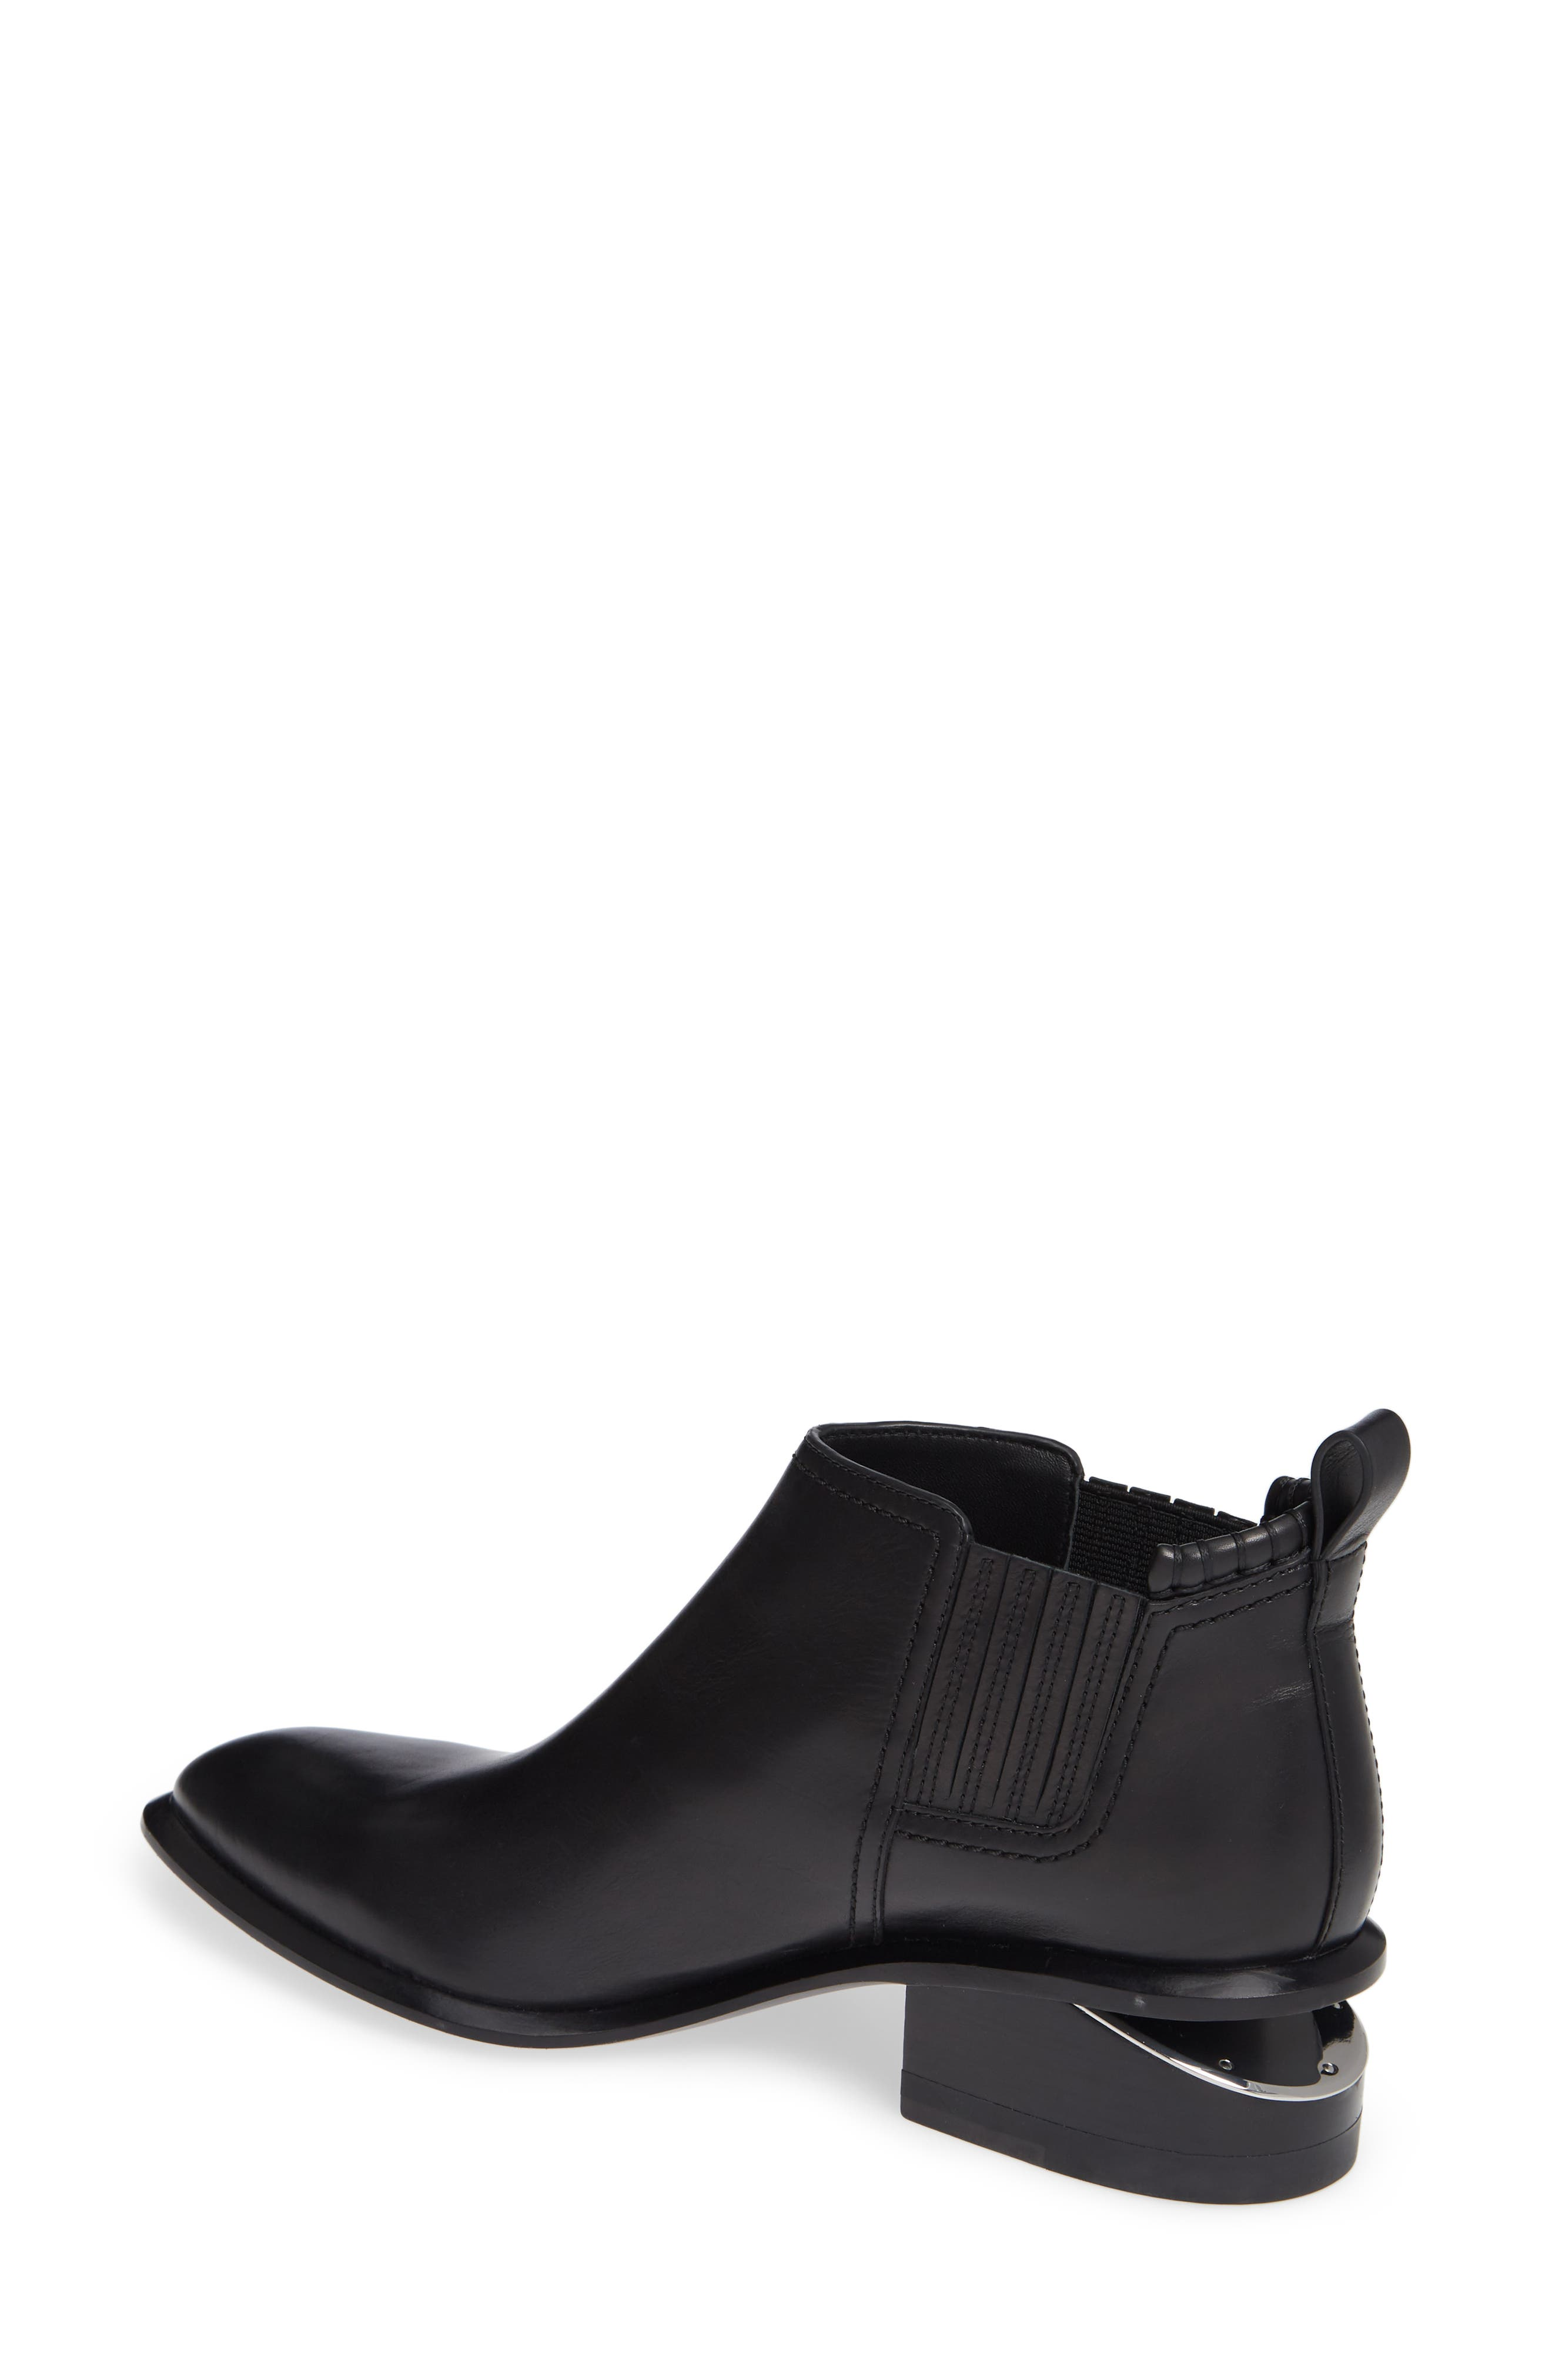 ALEXANDER WANG, Kori Boot, Alternate thumbnail 2, color, BLACK/ SILVER